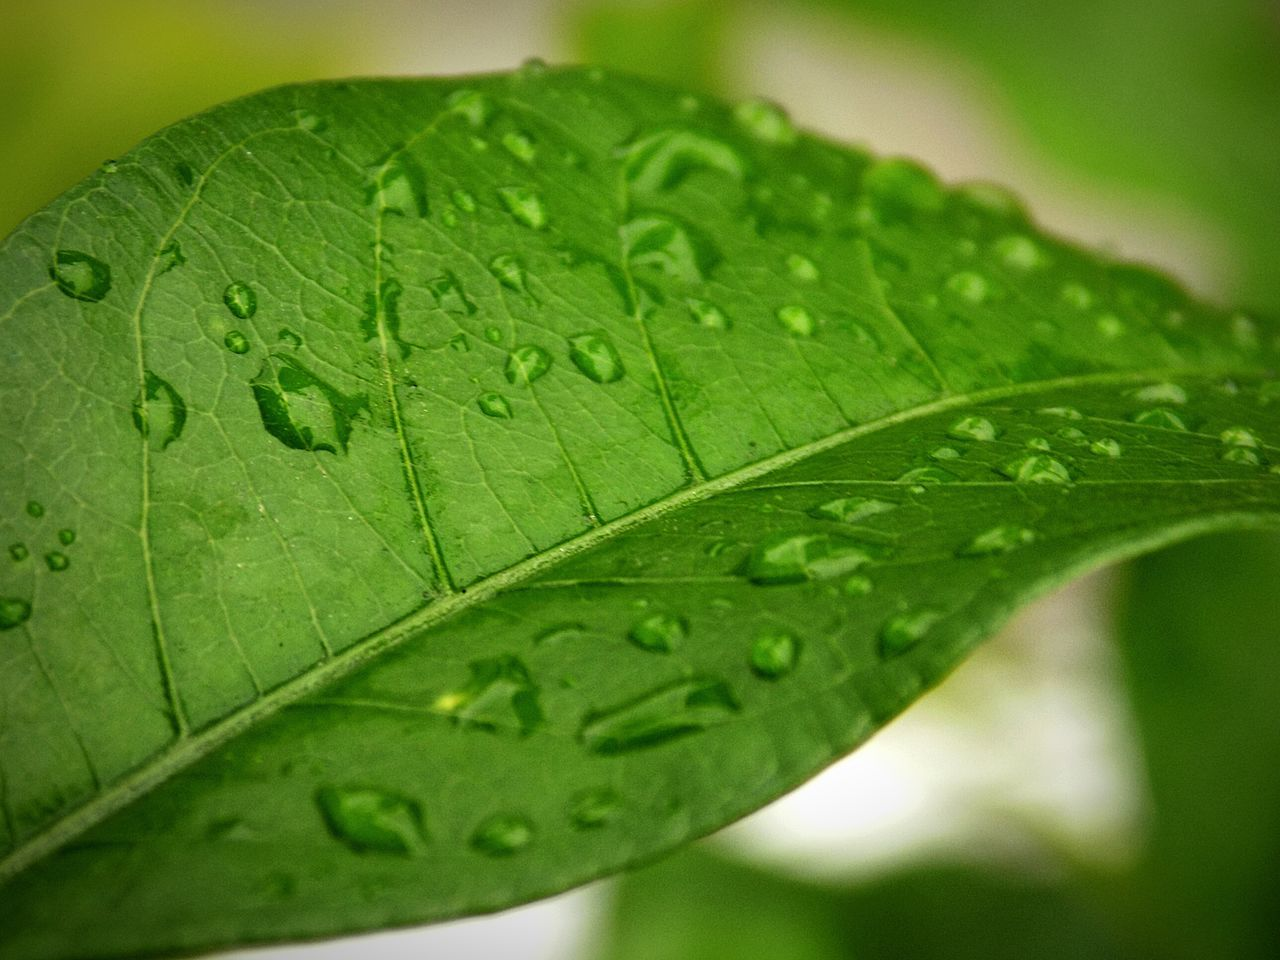 Raindrops on Leaf 🍂 on a Rainy Day @ Guwahati Nature_collection EyeEm Nature Lover Ordinary Objects Water_collection On My Balcony Monsoonseason